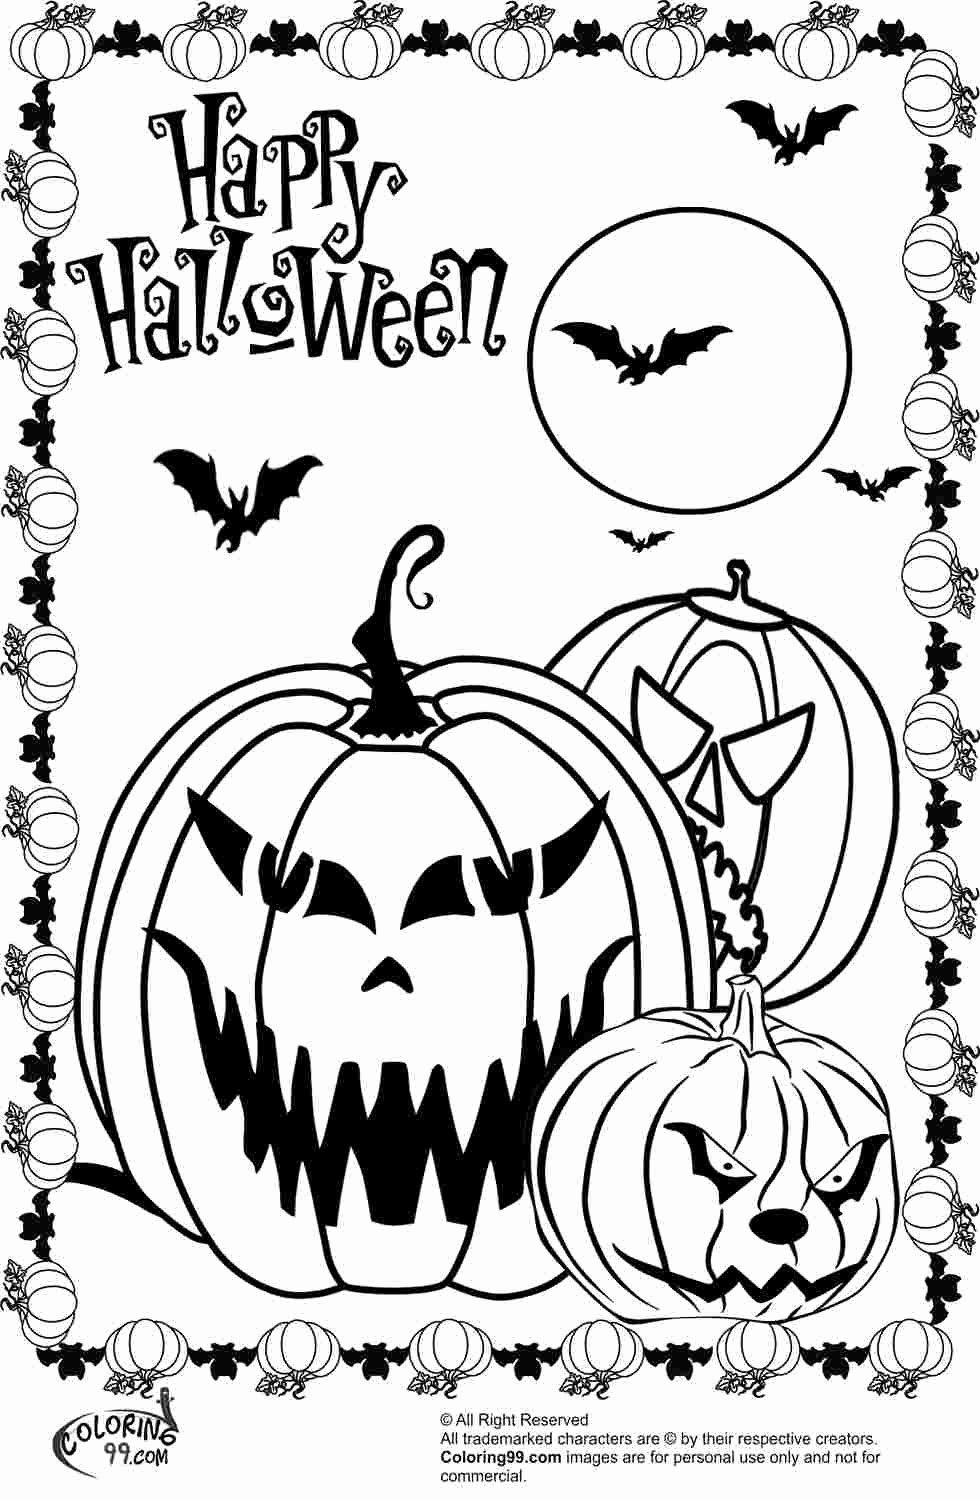 Spooky Halloween Coloring Pages Printable Awesome Scary Halloween Coloring Page Halloween Coloring Free Halloween Coloring Pages Scary Halloween Coloring Pages